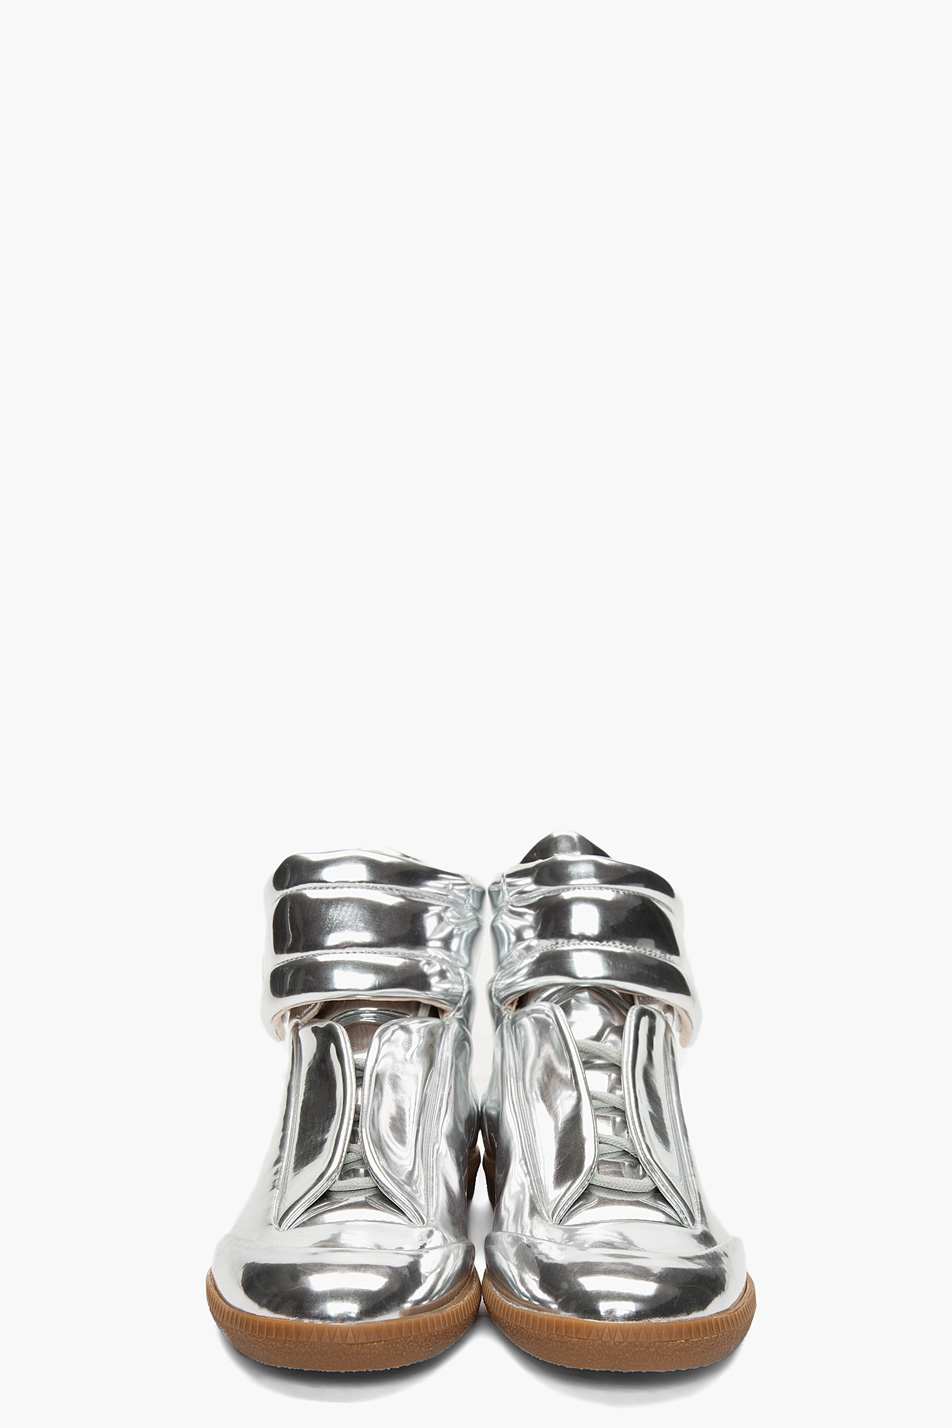 Maison martin margiela metallic sneakers for Maison de margiela